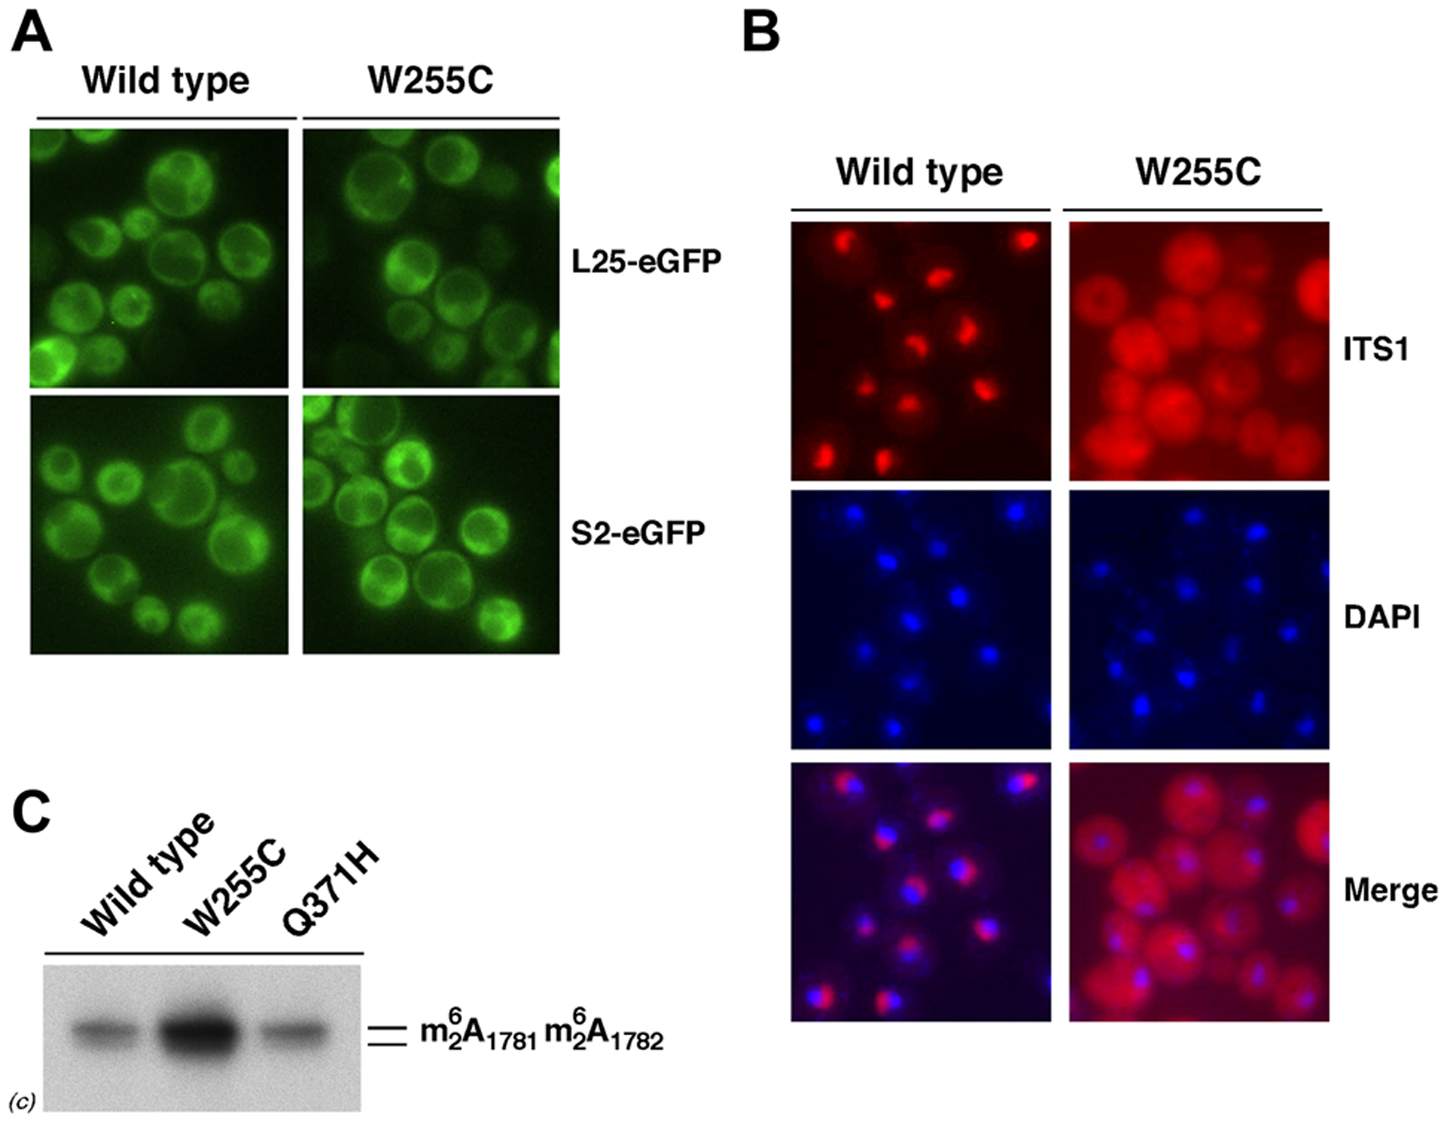 The 20S pre-rRNA accumulates in the cytoplasm of <i>rpl3</i>[W255C] cells.